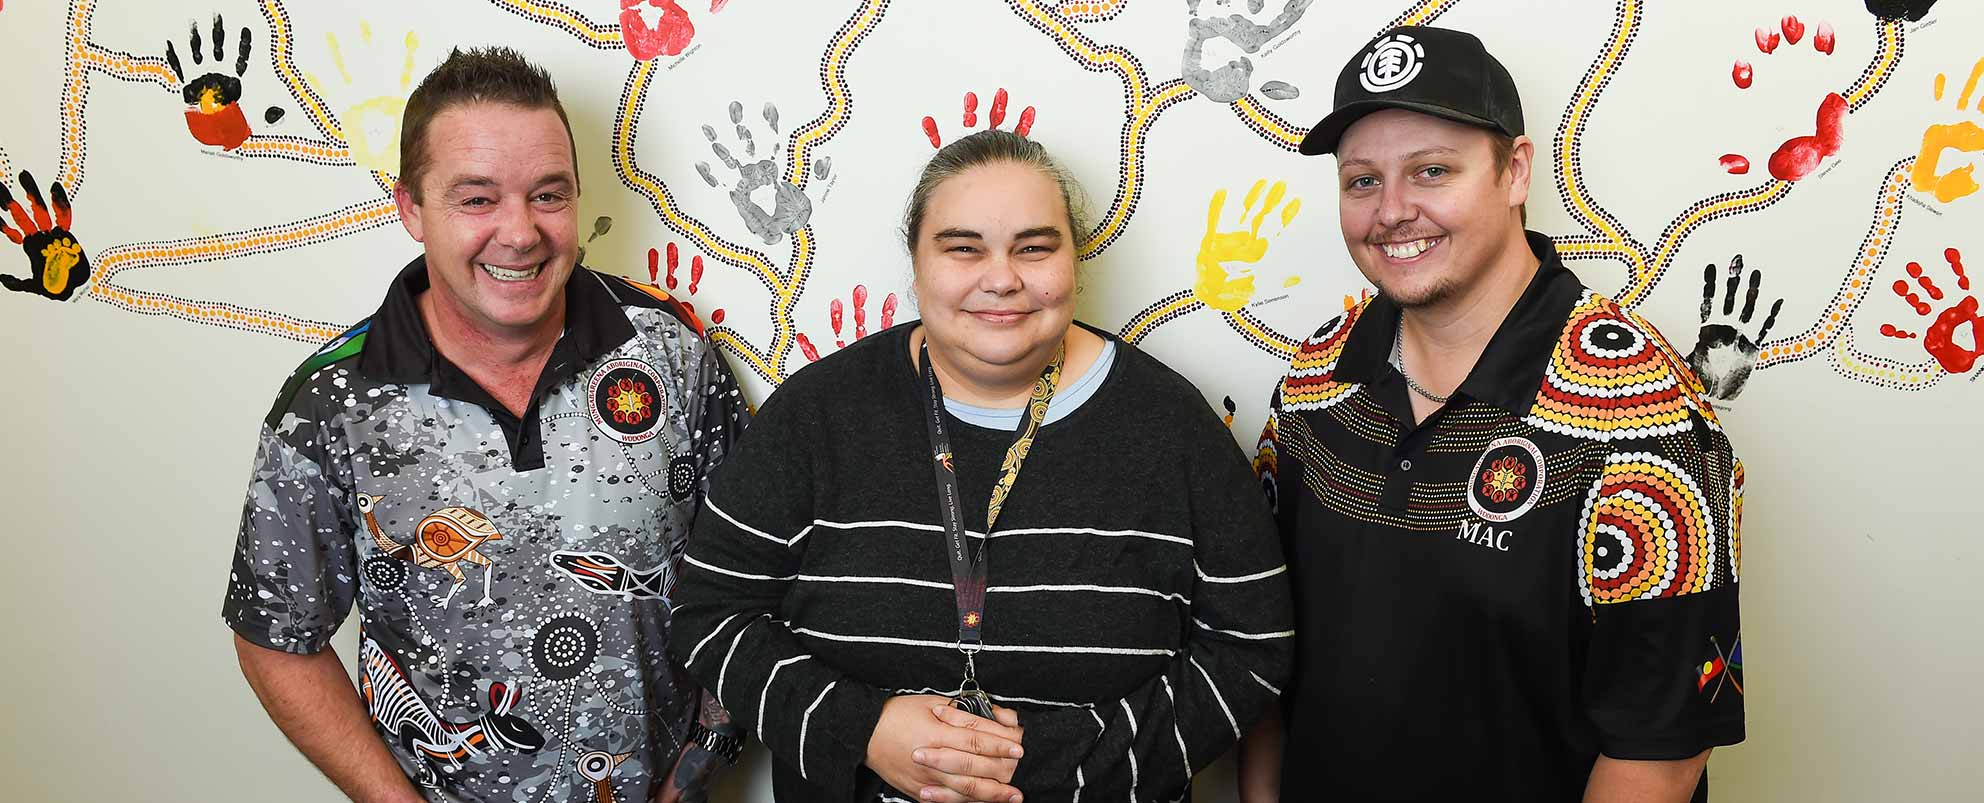 Photo of a woman and two men smiling and standing in front of wall painted with an Indigeneous design of handprints and connecting dotted lines, both men wearing polo shirts with Indigeneous designs and the woman wearing a grey sweater with thin white stripes, her hands clasped in front of her.